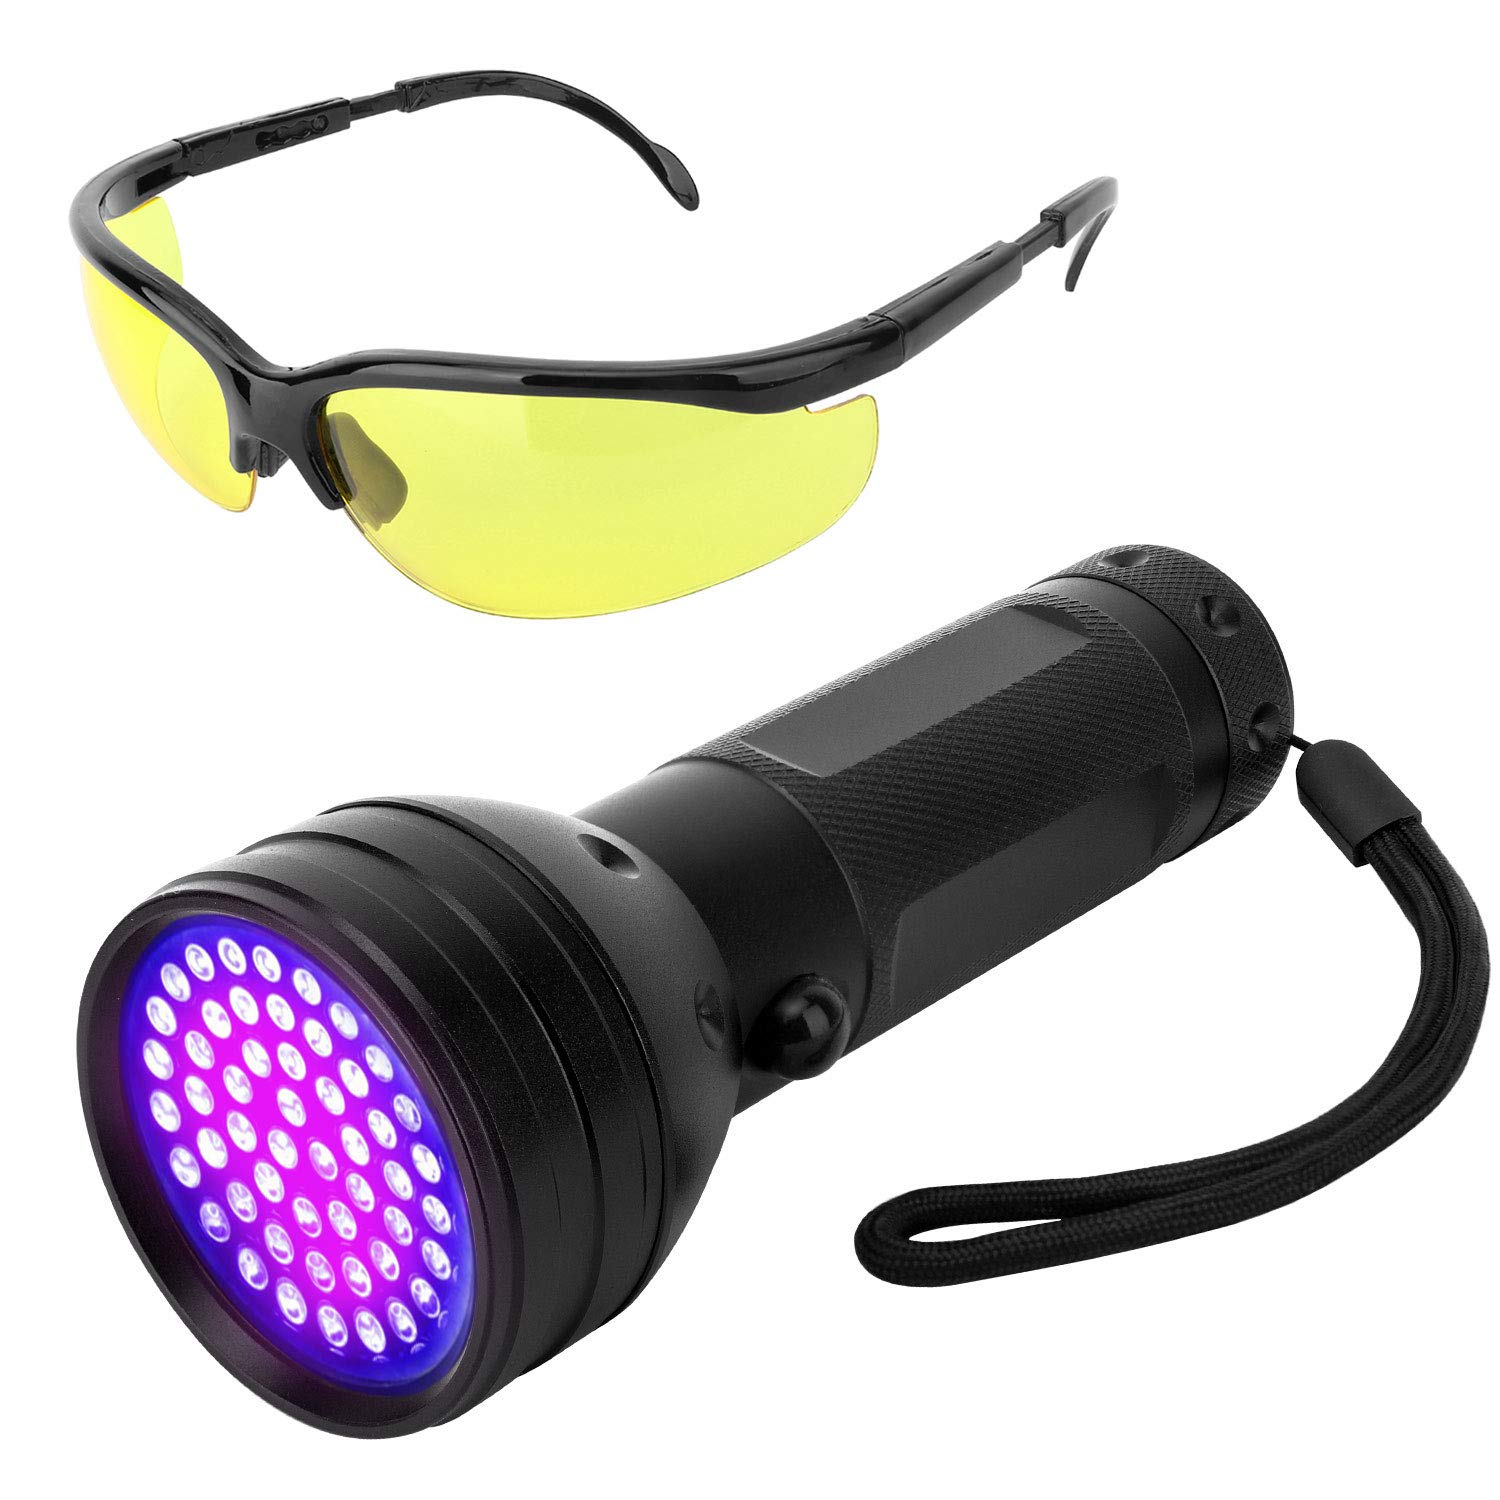 VavoPaw UV Blacklight Flashlight, 51 LED Ultraviolet 395nm UV Hand-held Pet Urine Currency Detector Stains Bed Bug Detective Torch UV Protecting Glasses Included - Black by VavoPaw